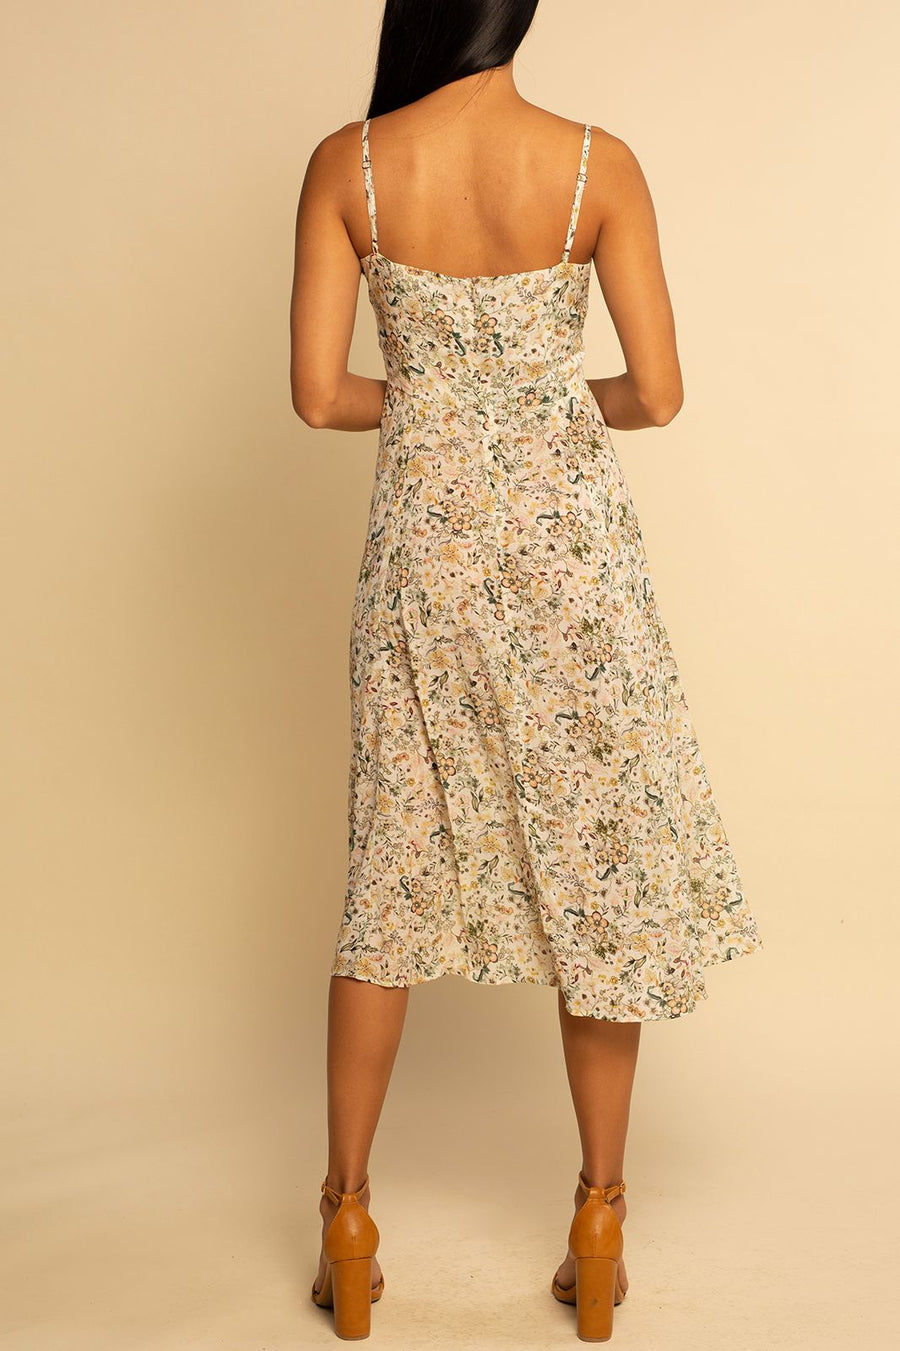 Como Square Neck Dress - Ditsy Floral